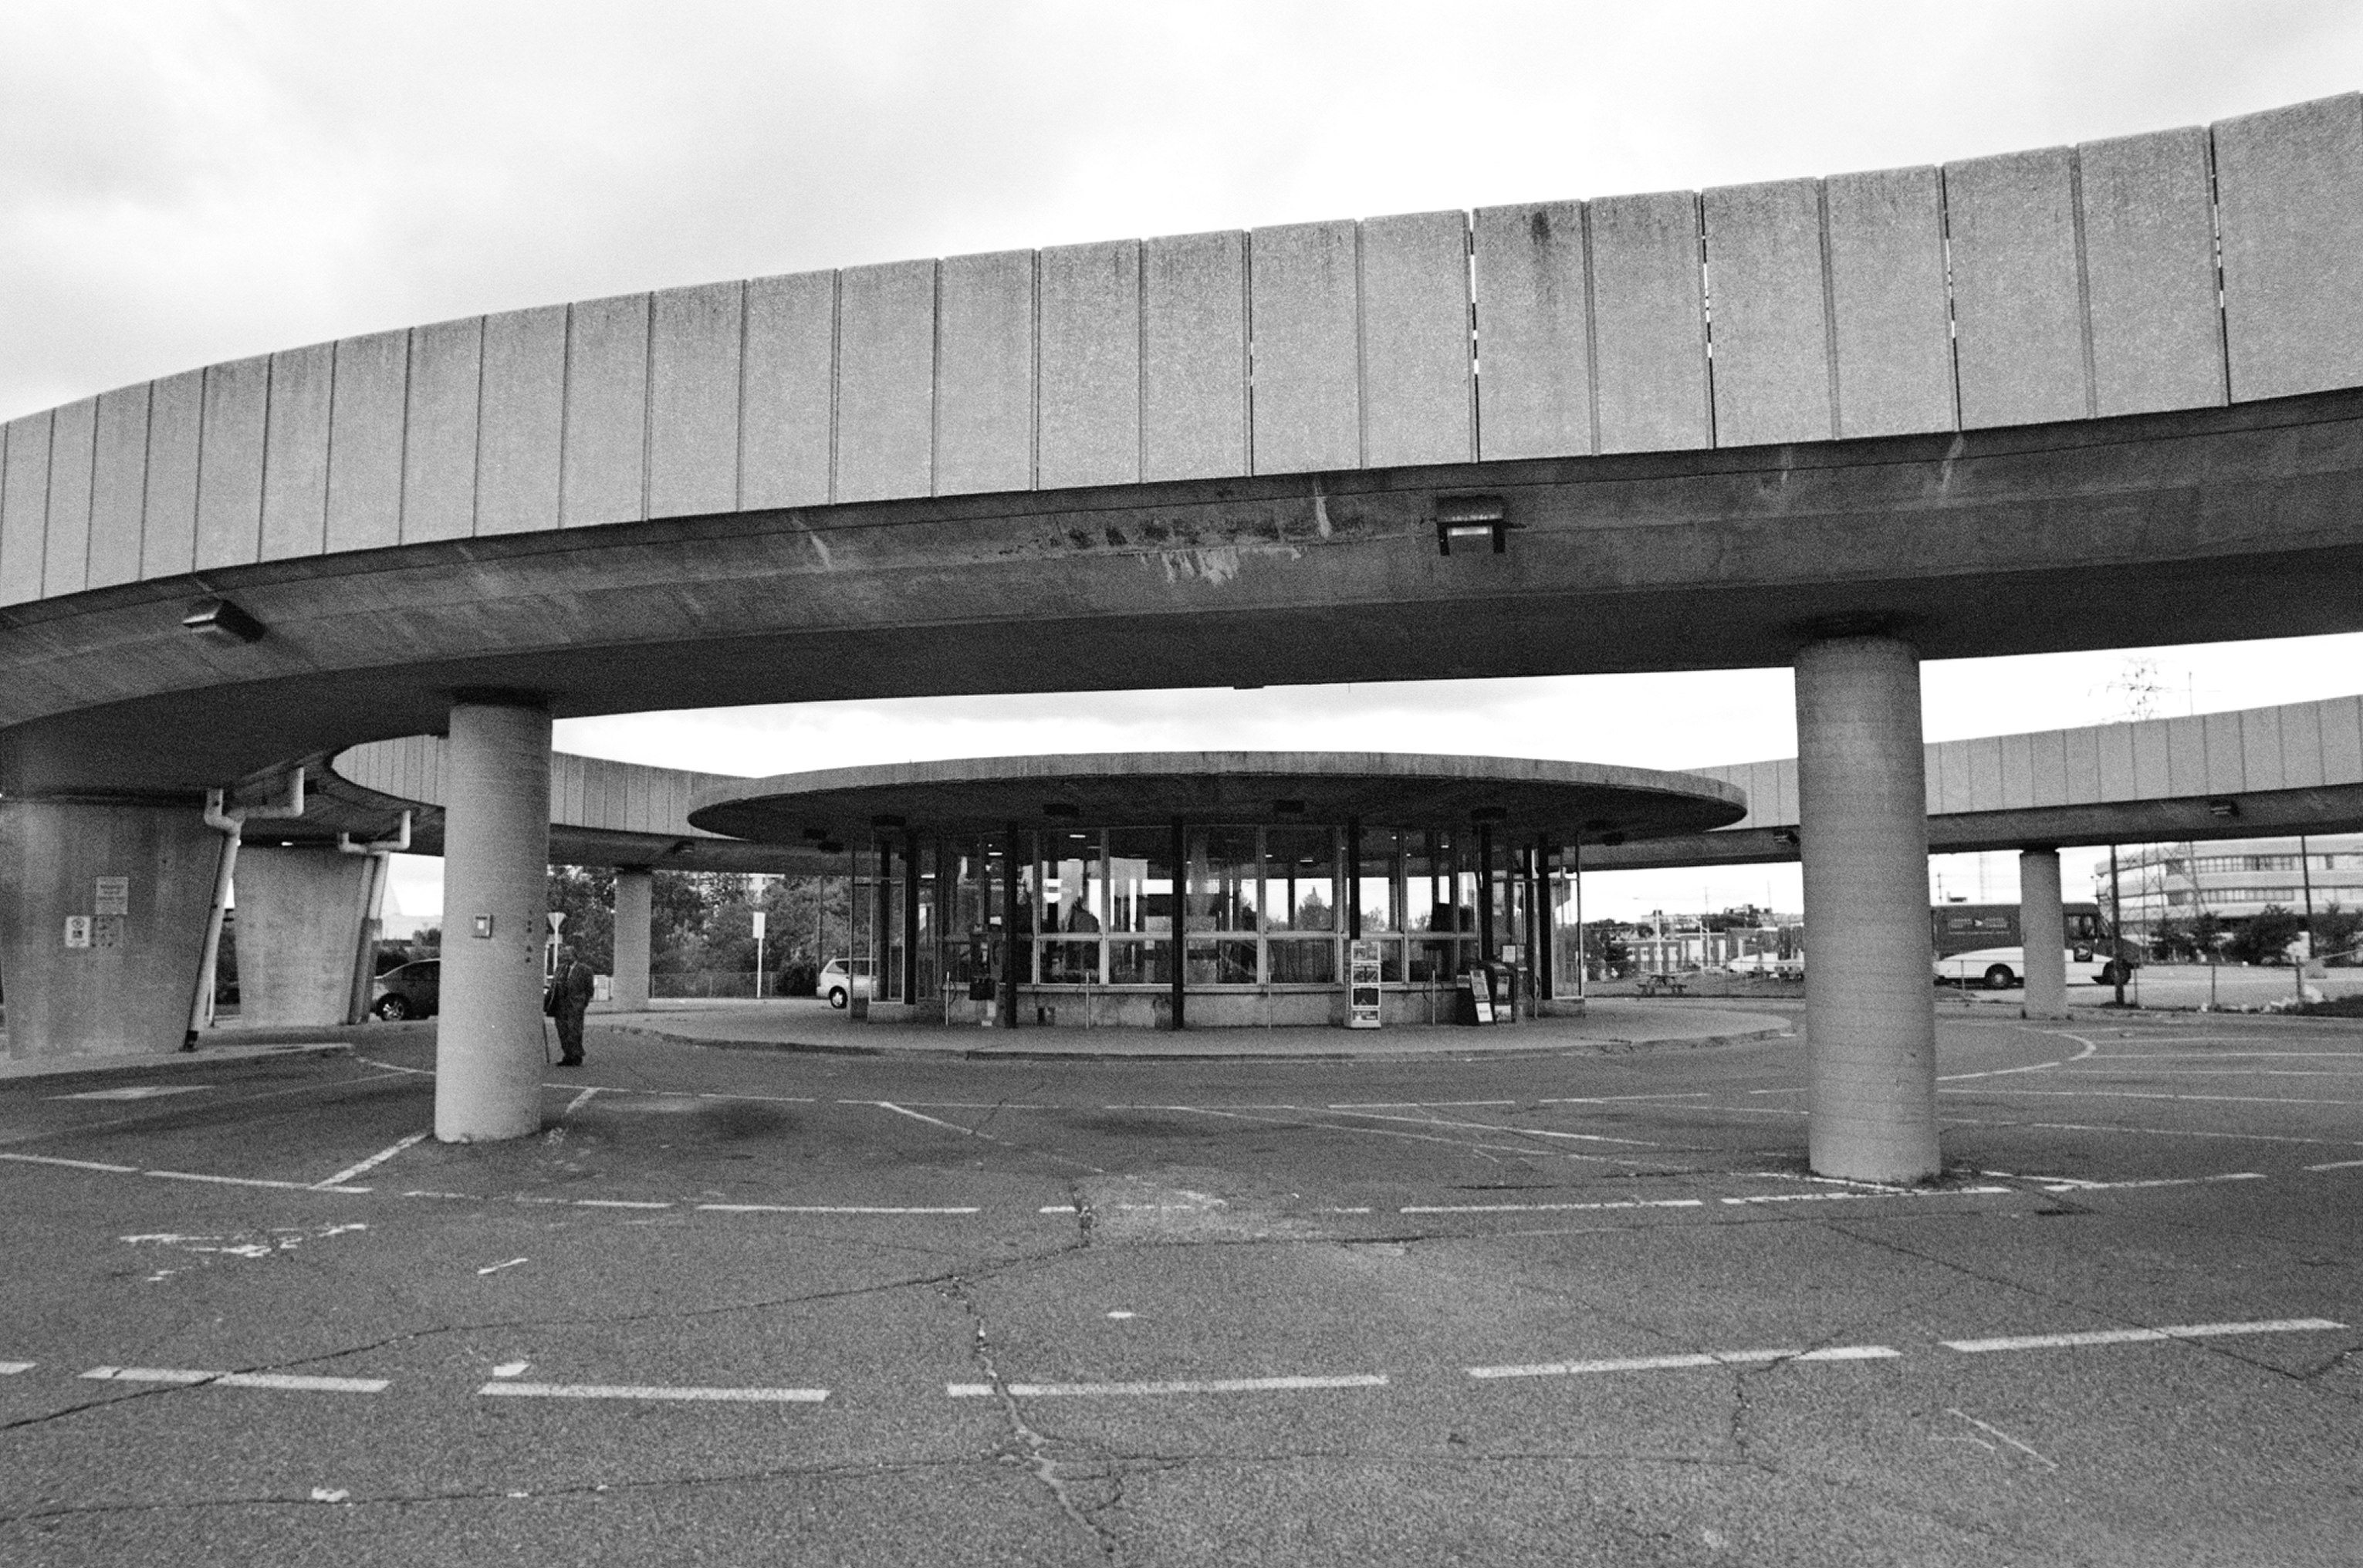 A Scarborough Rapid Transit station. Photo courtesy of John Meadows, from the Torontoist Flickr Pool.